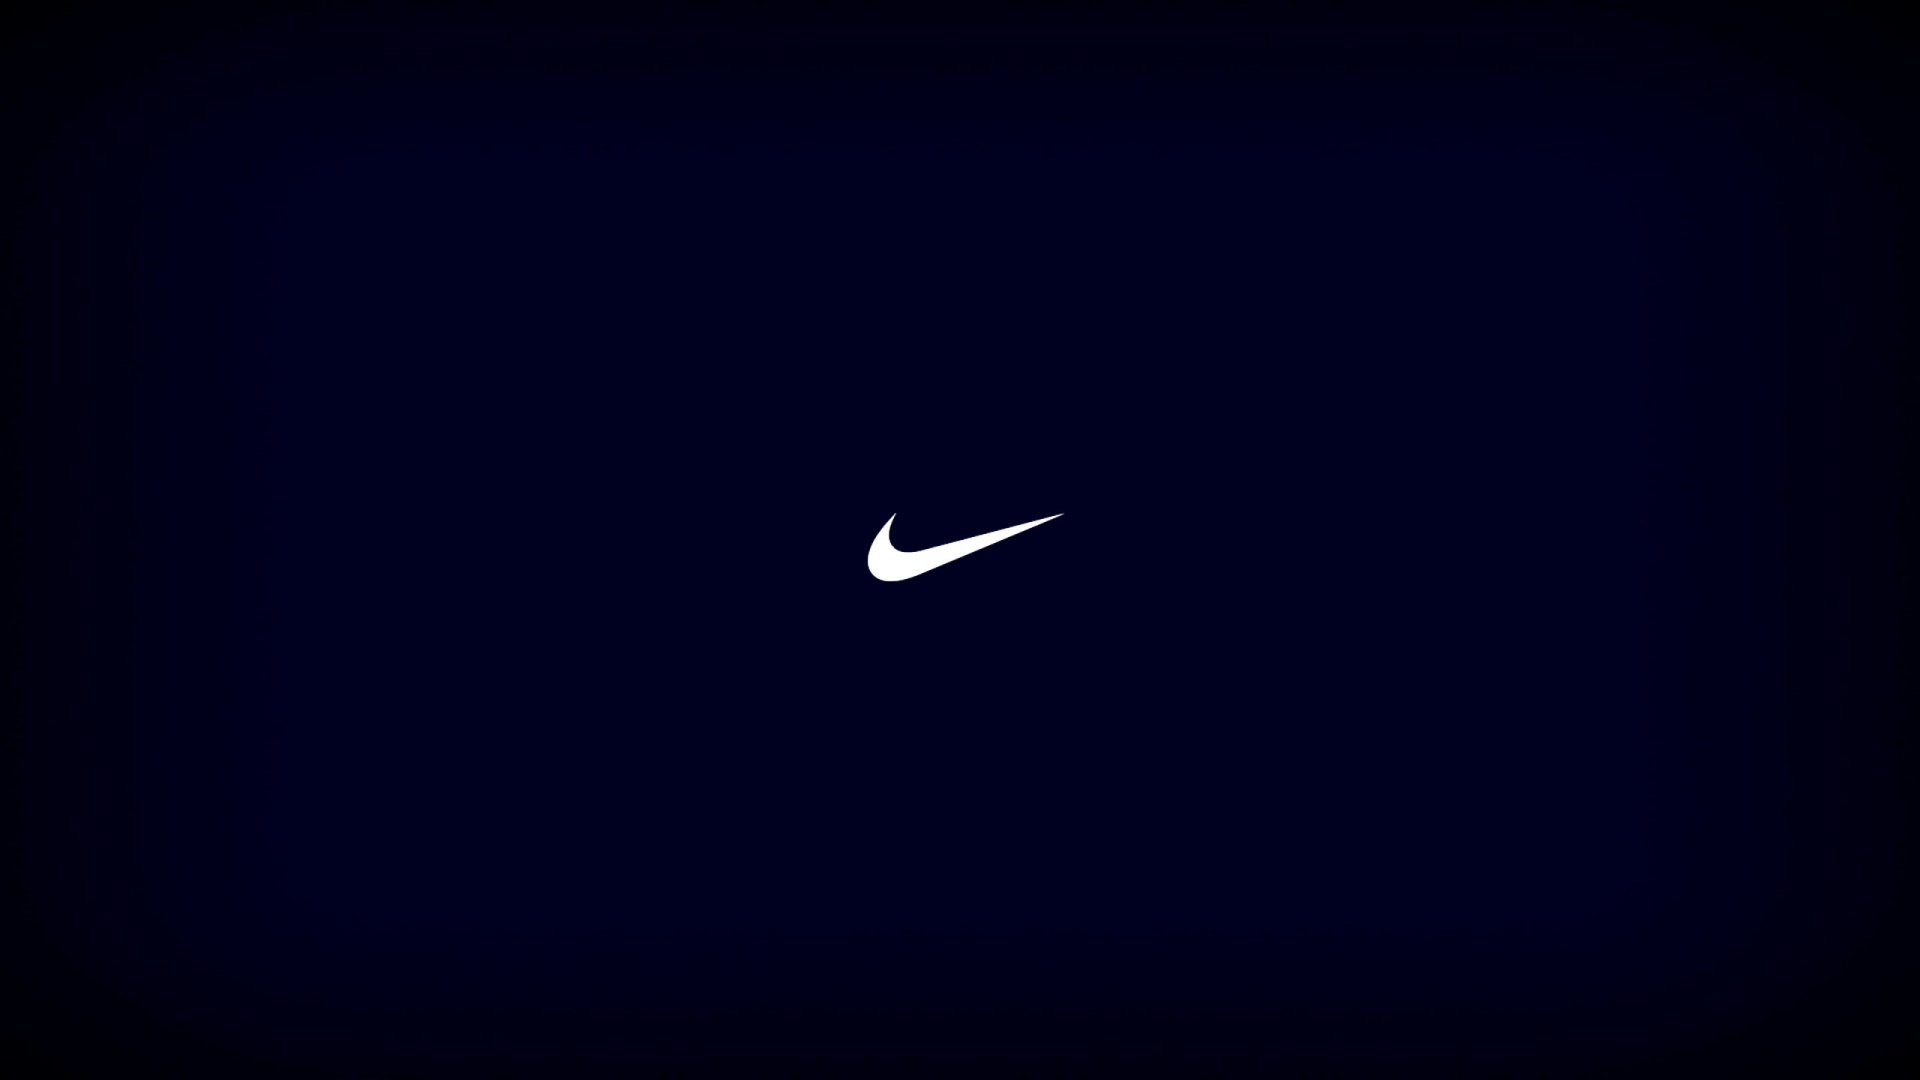 Nike We Present Collection Of HD Wallpapers